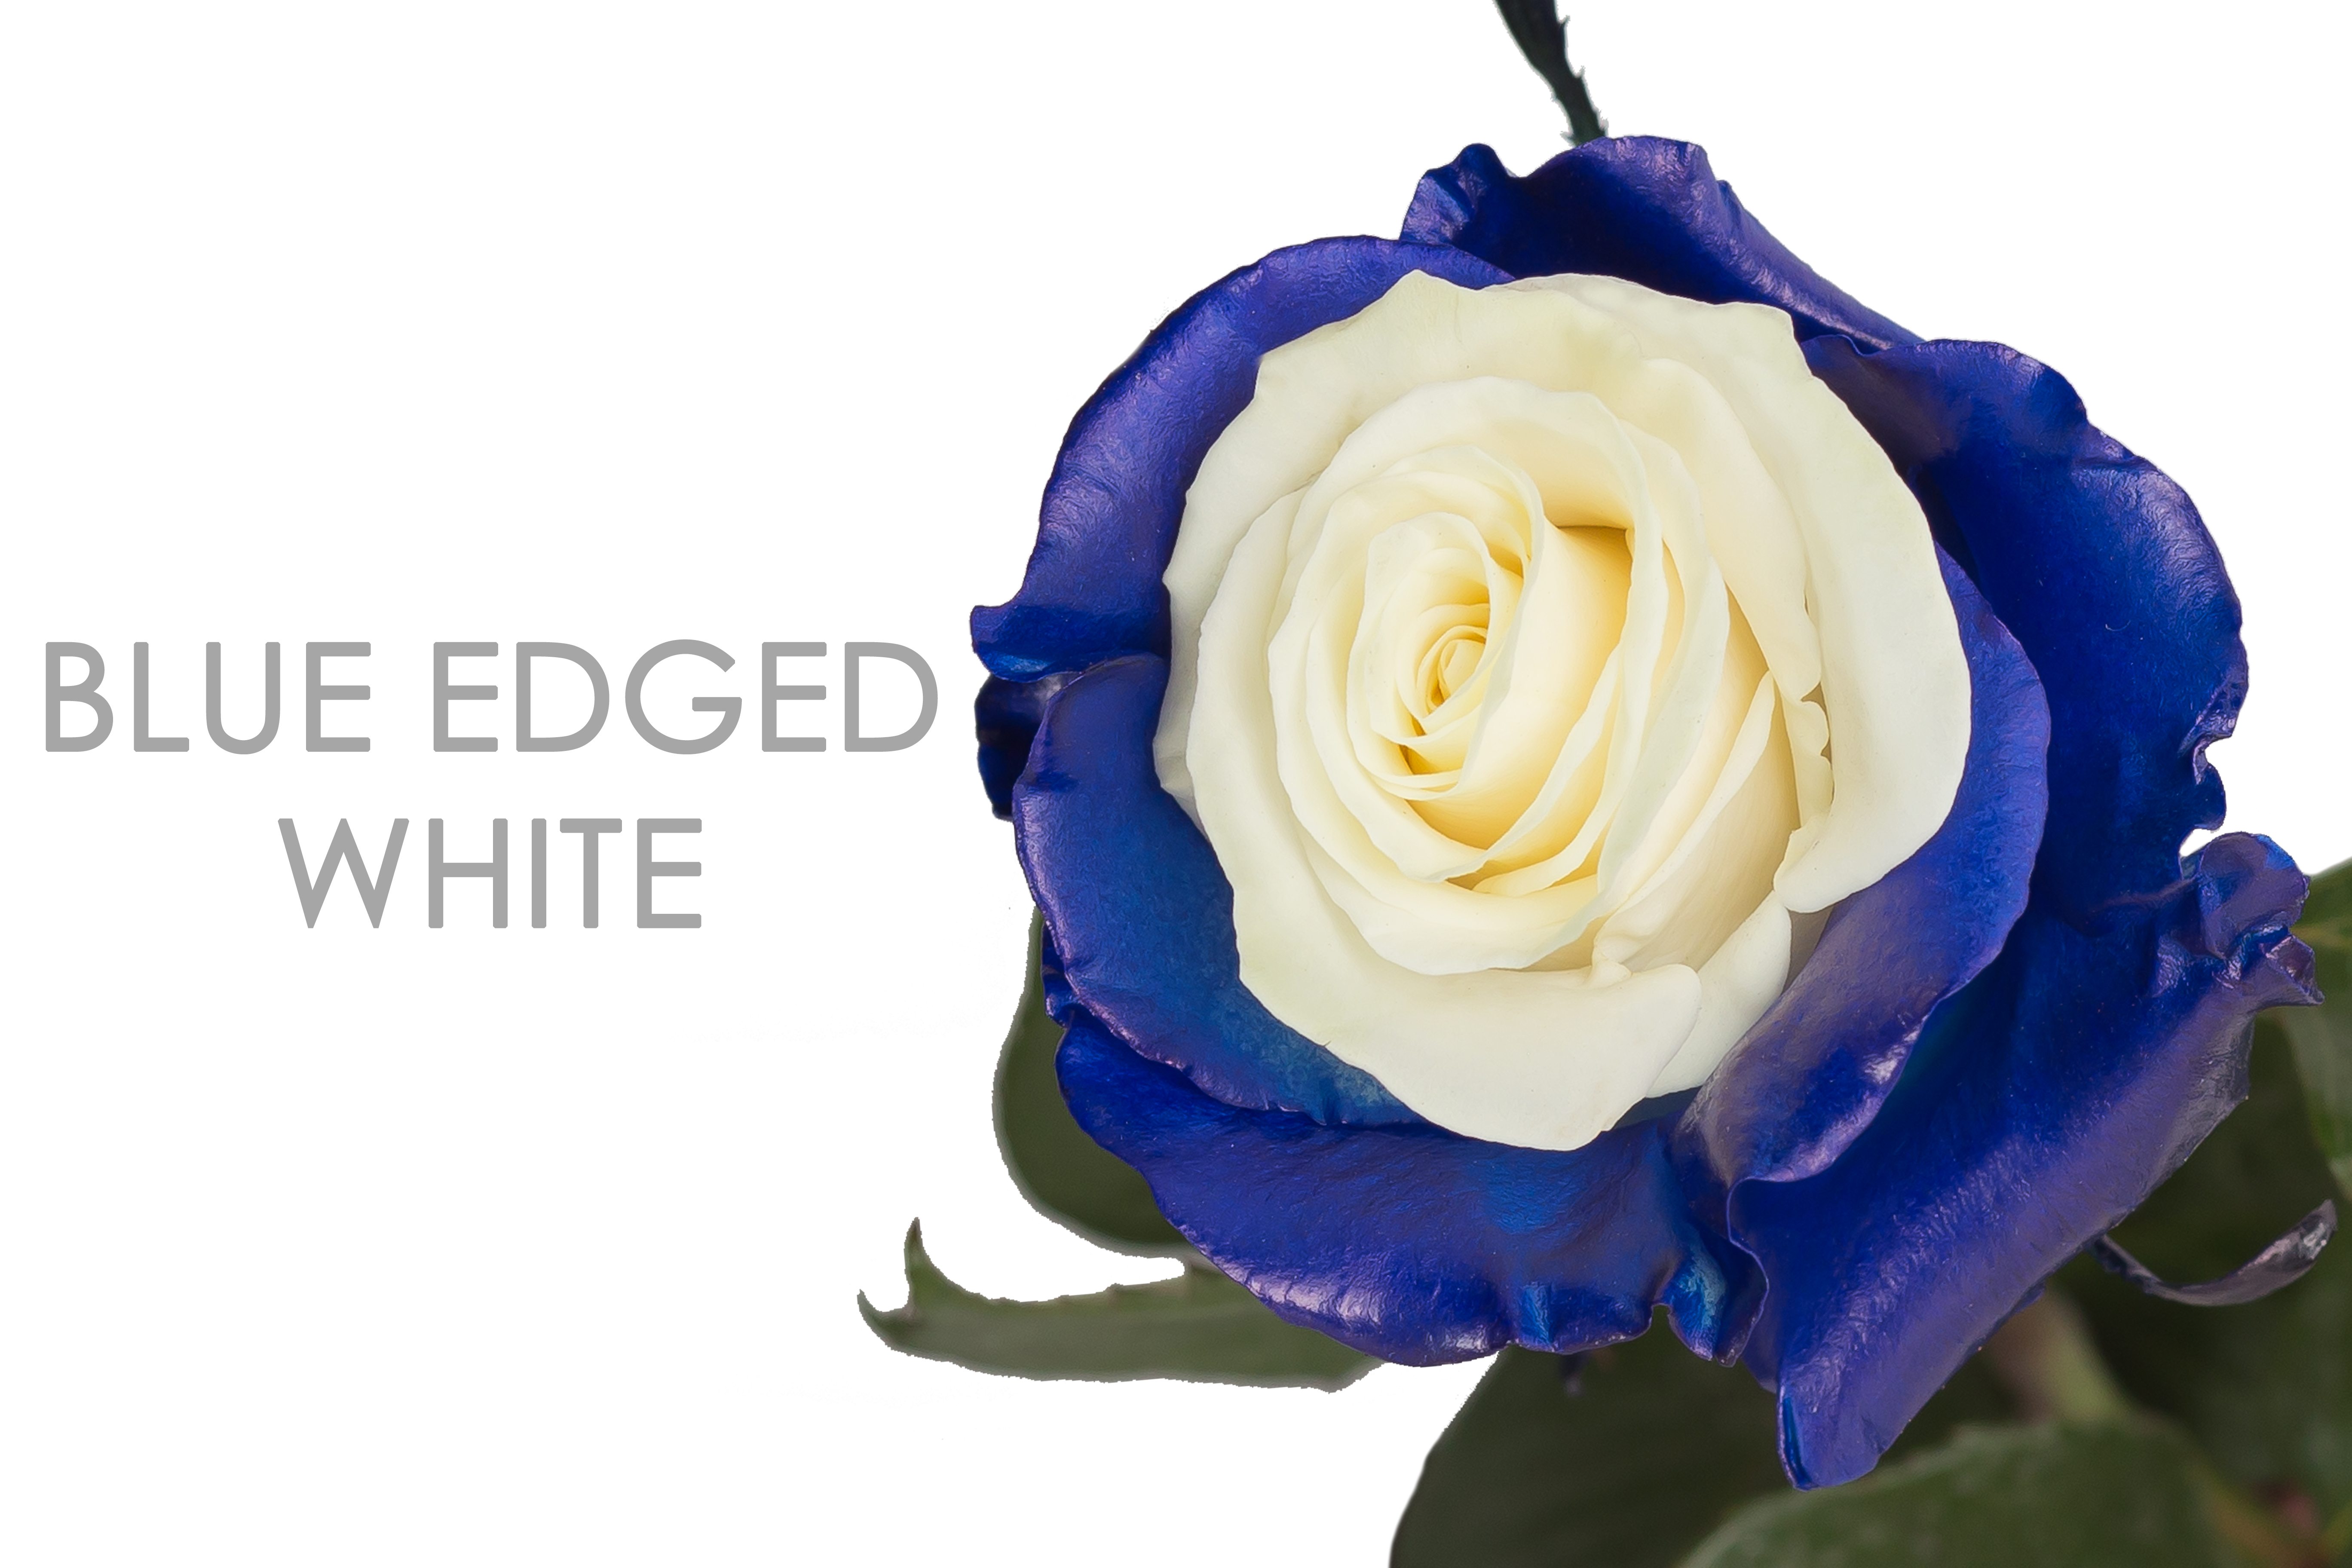 BLUE-EDGED-WHITE-CAPTION-UNIDAD